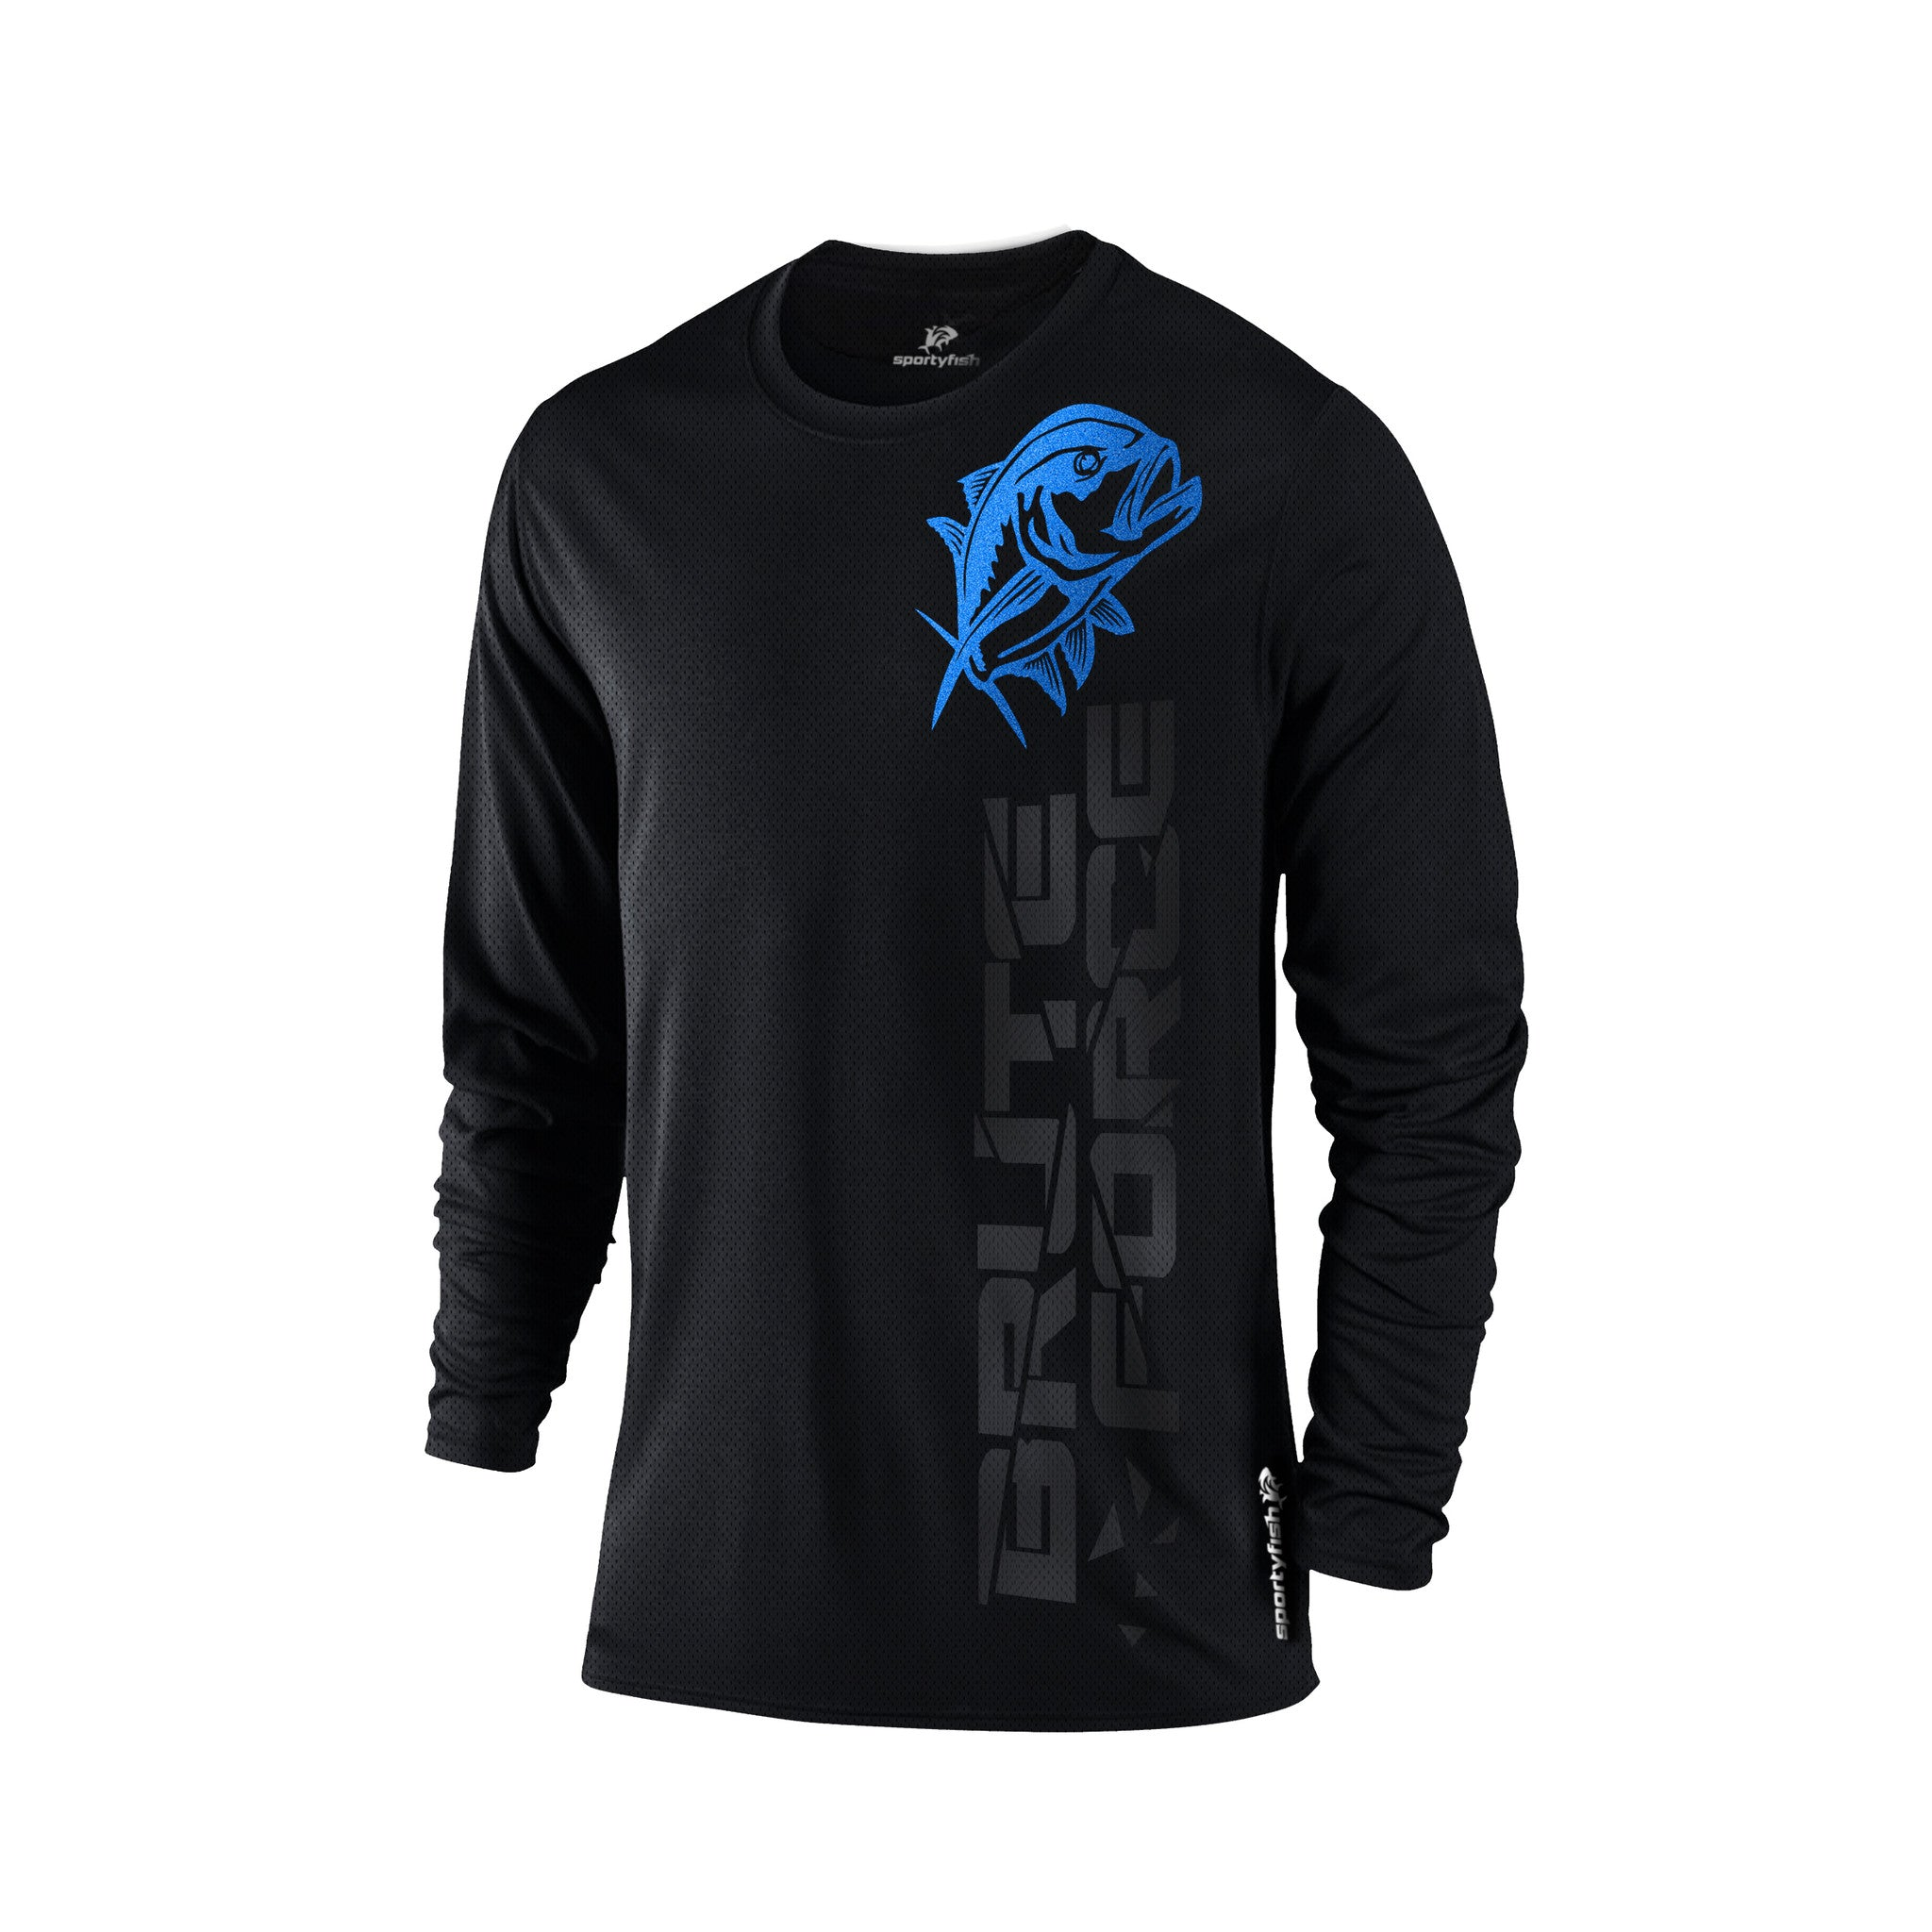 Black t shirt front view - Sportyfish Black Series Black Long Sleeves T Shirt Giant Trevally Front View